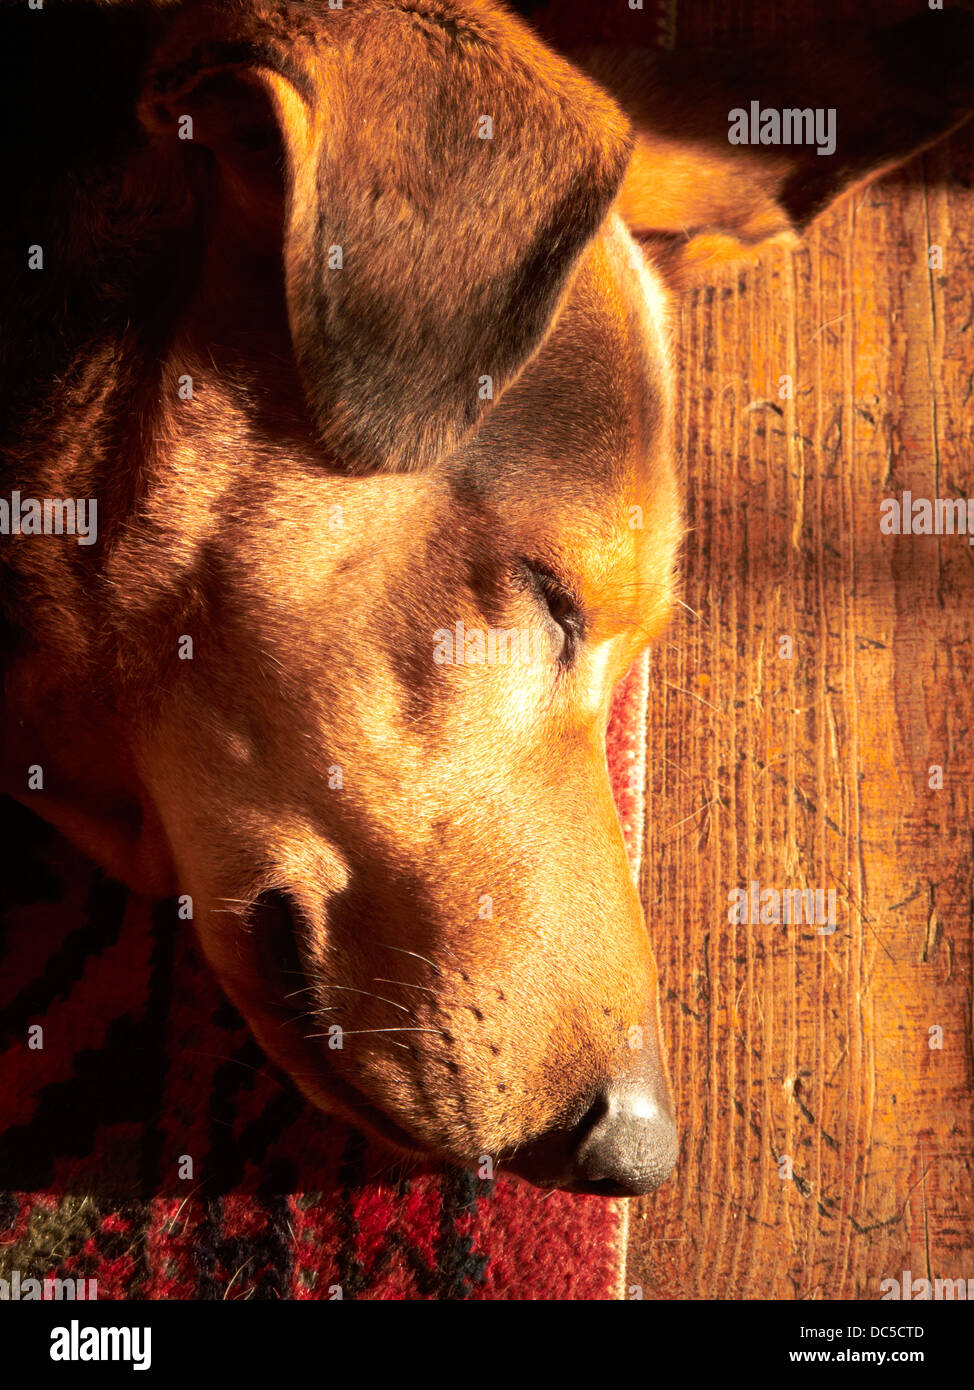 sleeping dog - Stock Image